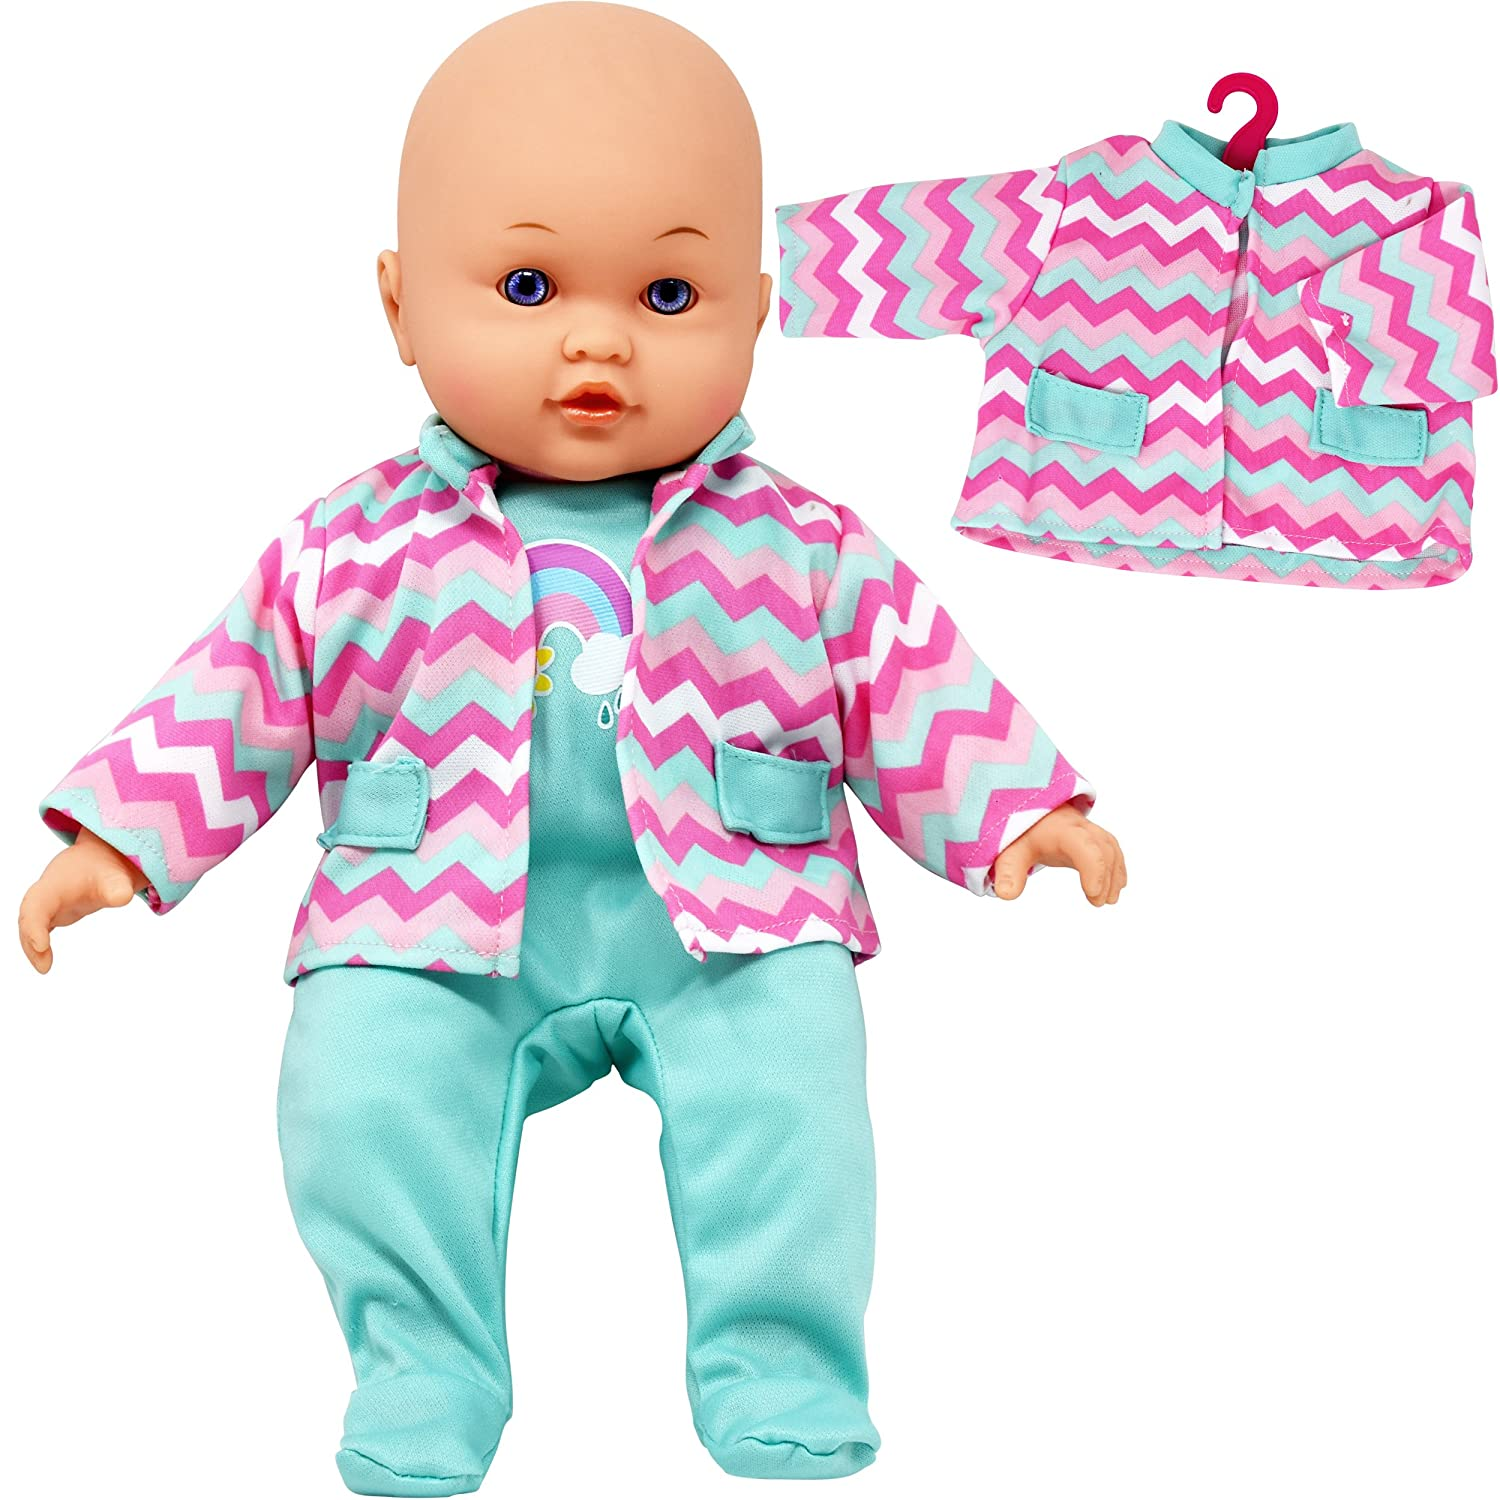 b6d7d47fc Amazon.com: Doll with Clothes Set, Baby Doll with 4 Complete Outfits and  Accessories, Blocks, Shoes: Toys & Games